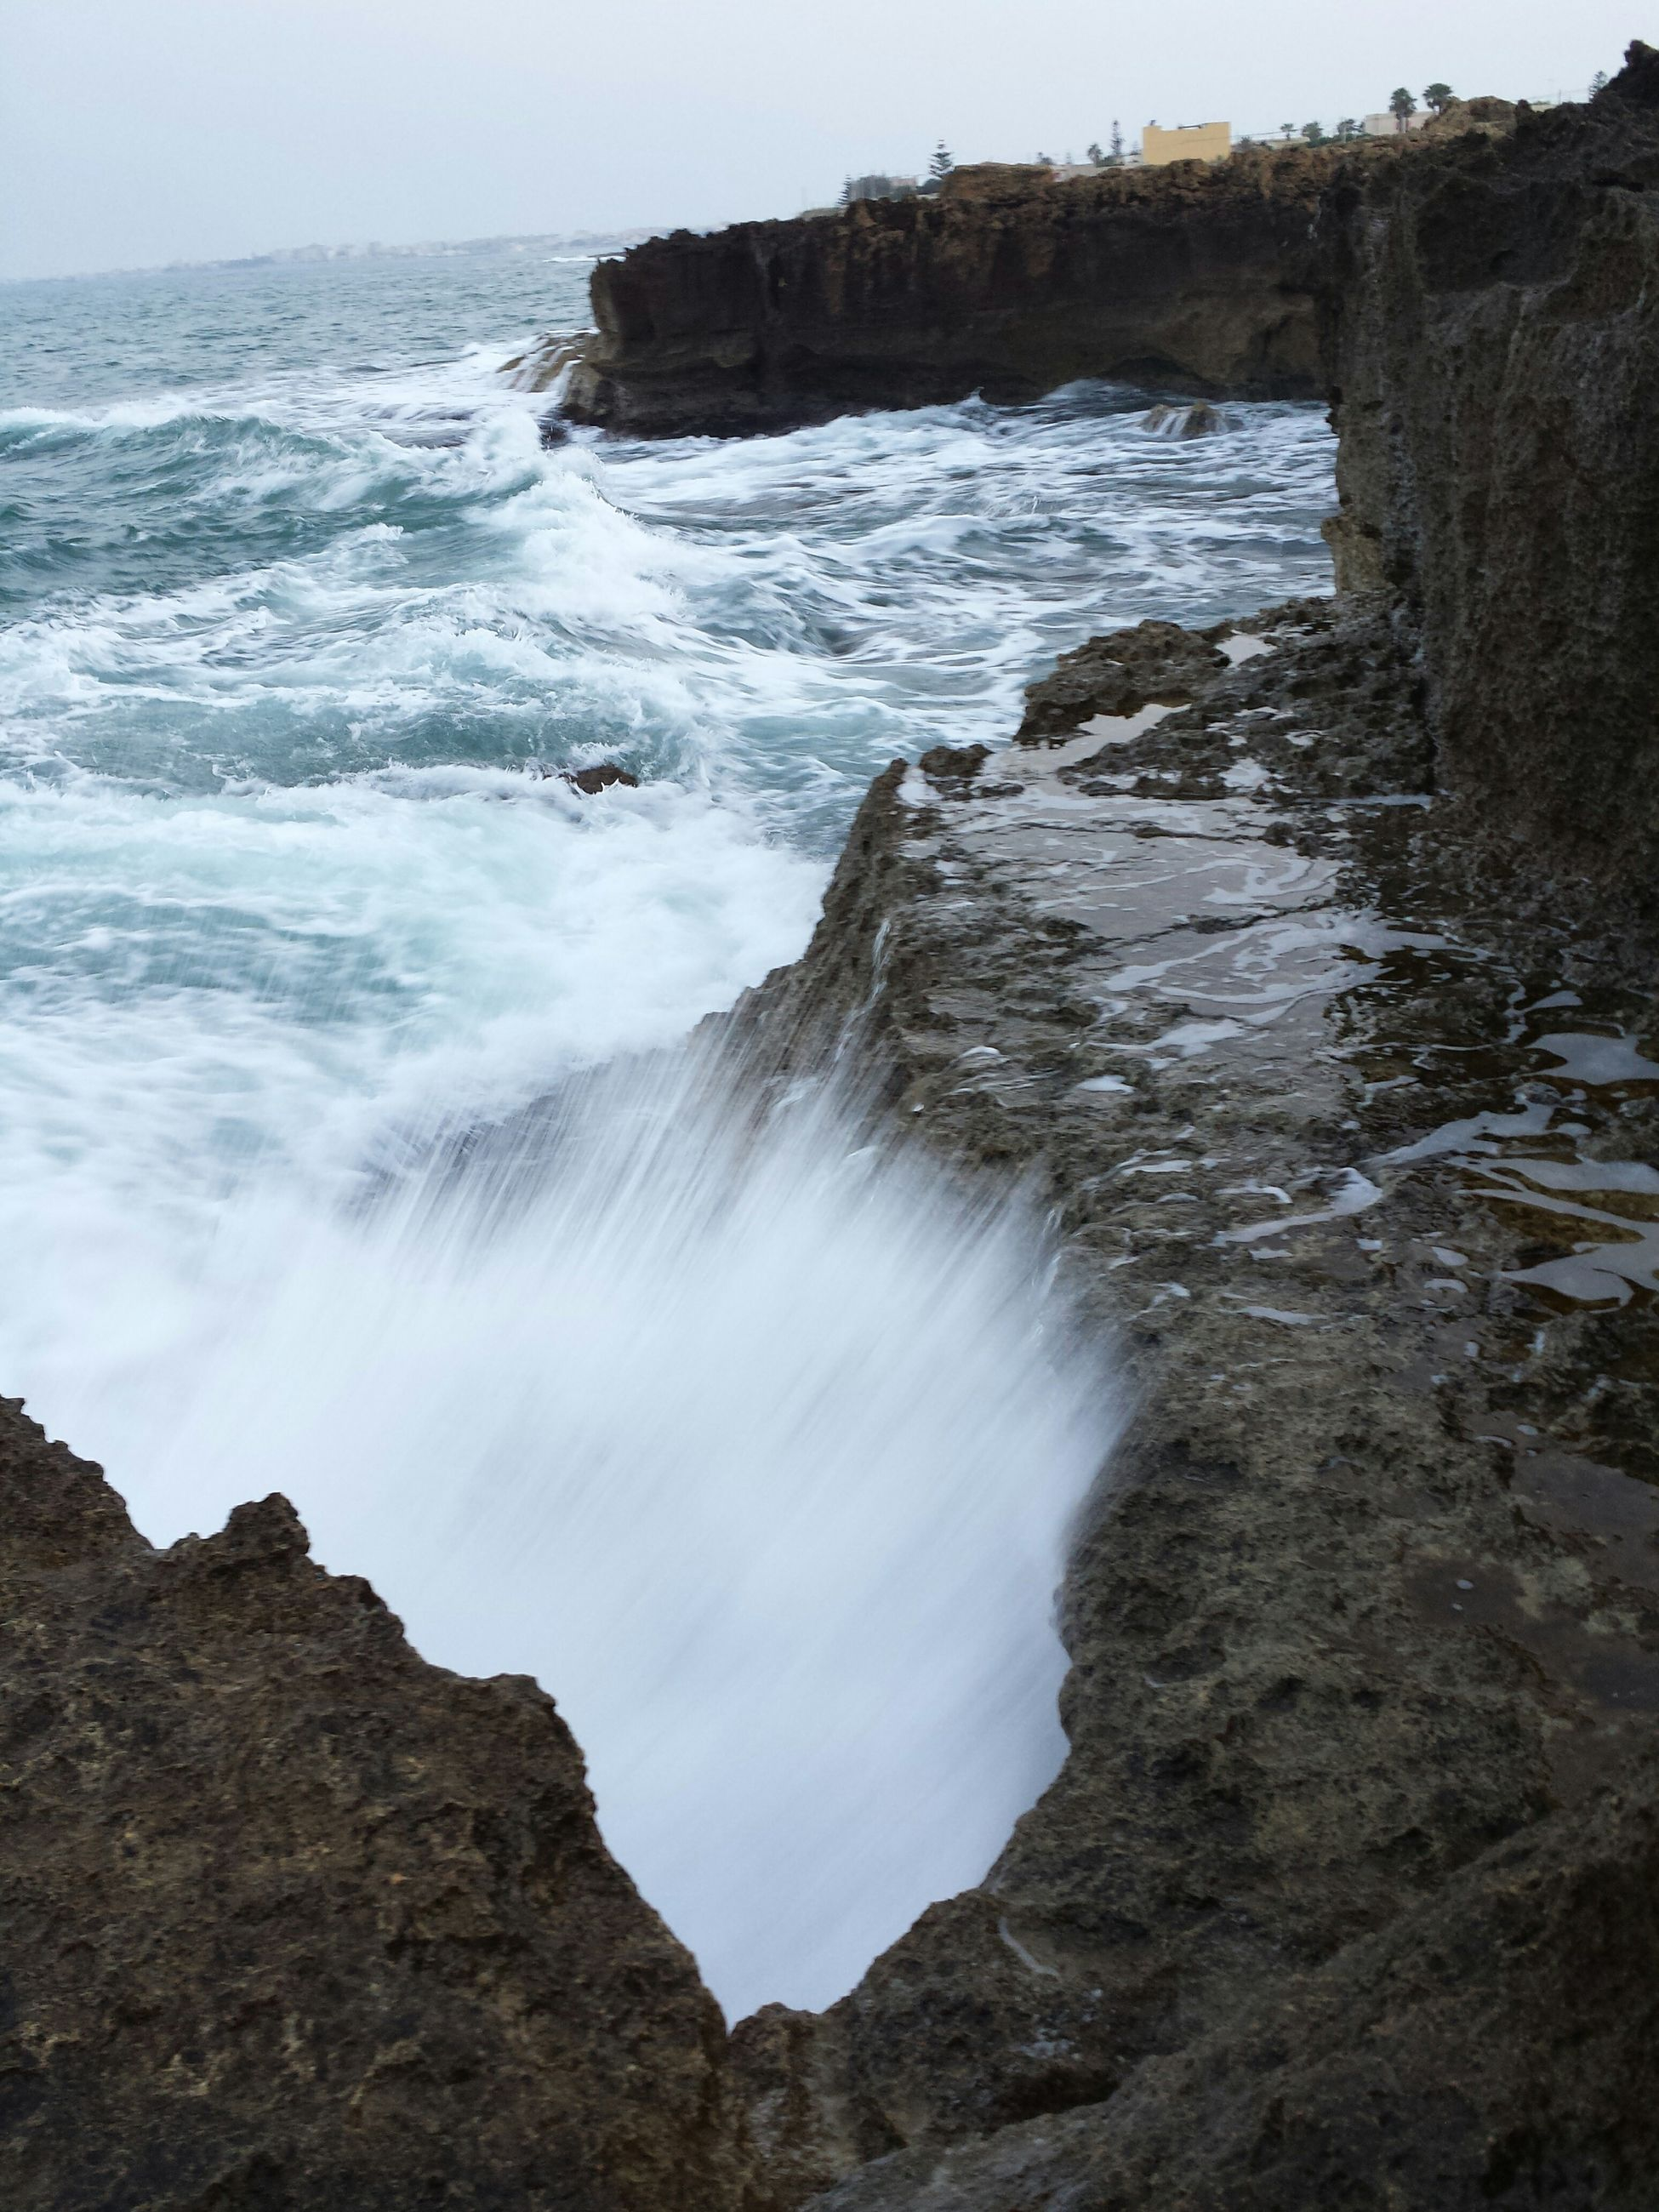 water, sea, surf, scenics, beauty in nature, rock - object, wave, rock formation, nature, tranquil scene, shore, motion, tranquility, beach, horizon over water, rock, splashing, idyllic, coastline, power in nature